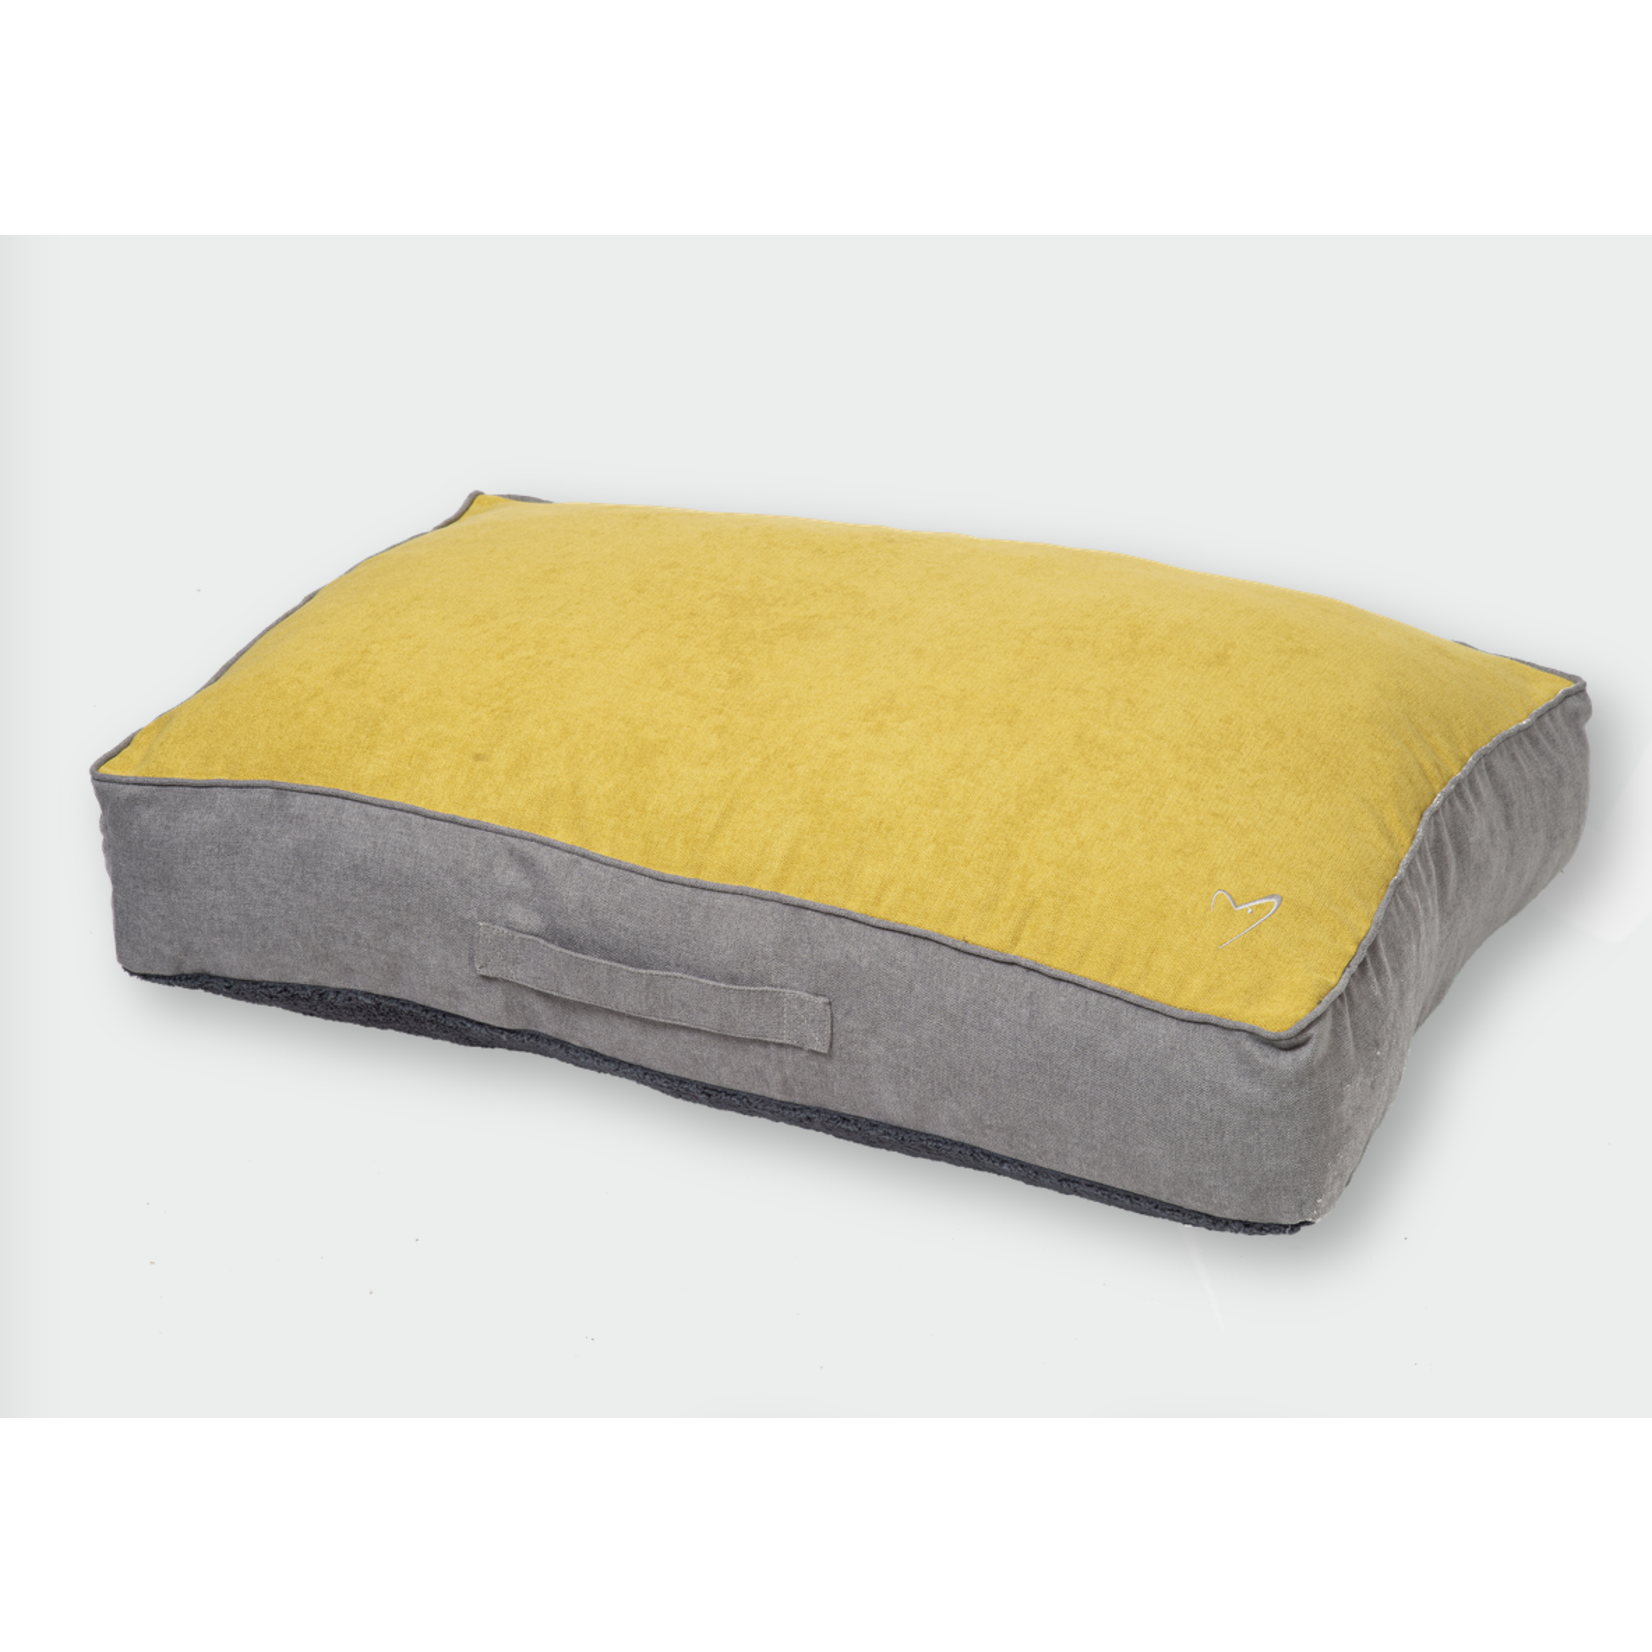 Gor Pets Camden Sleeper Dog Bed with Removable Cover, Mustard Yellow